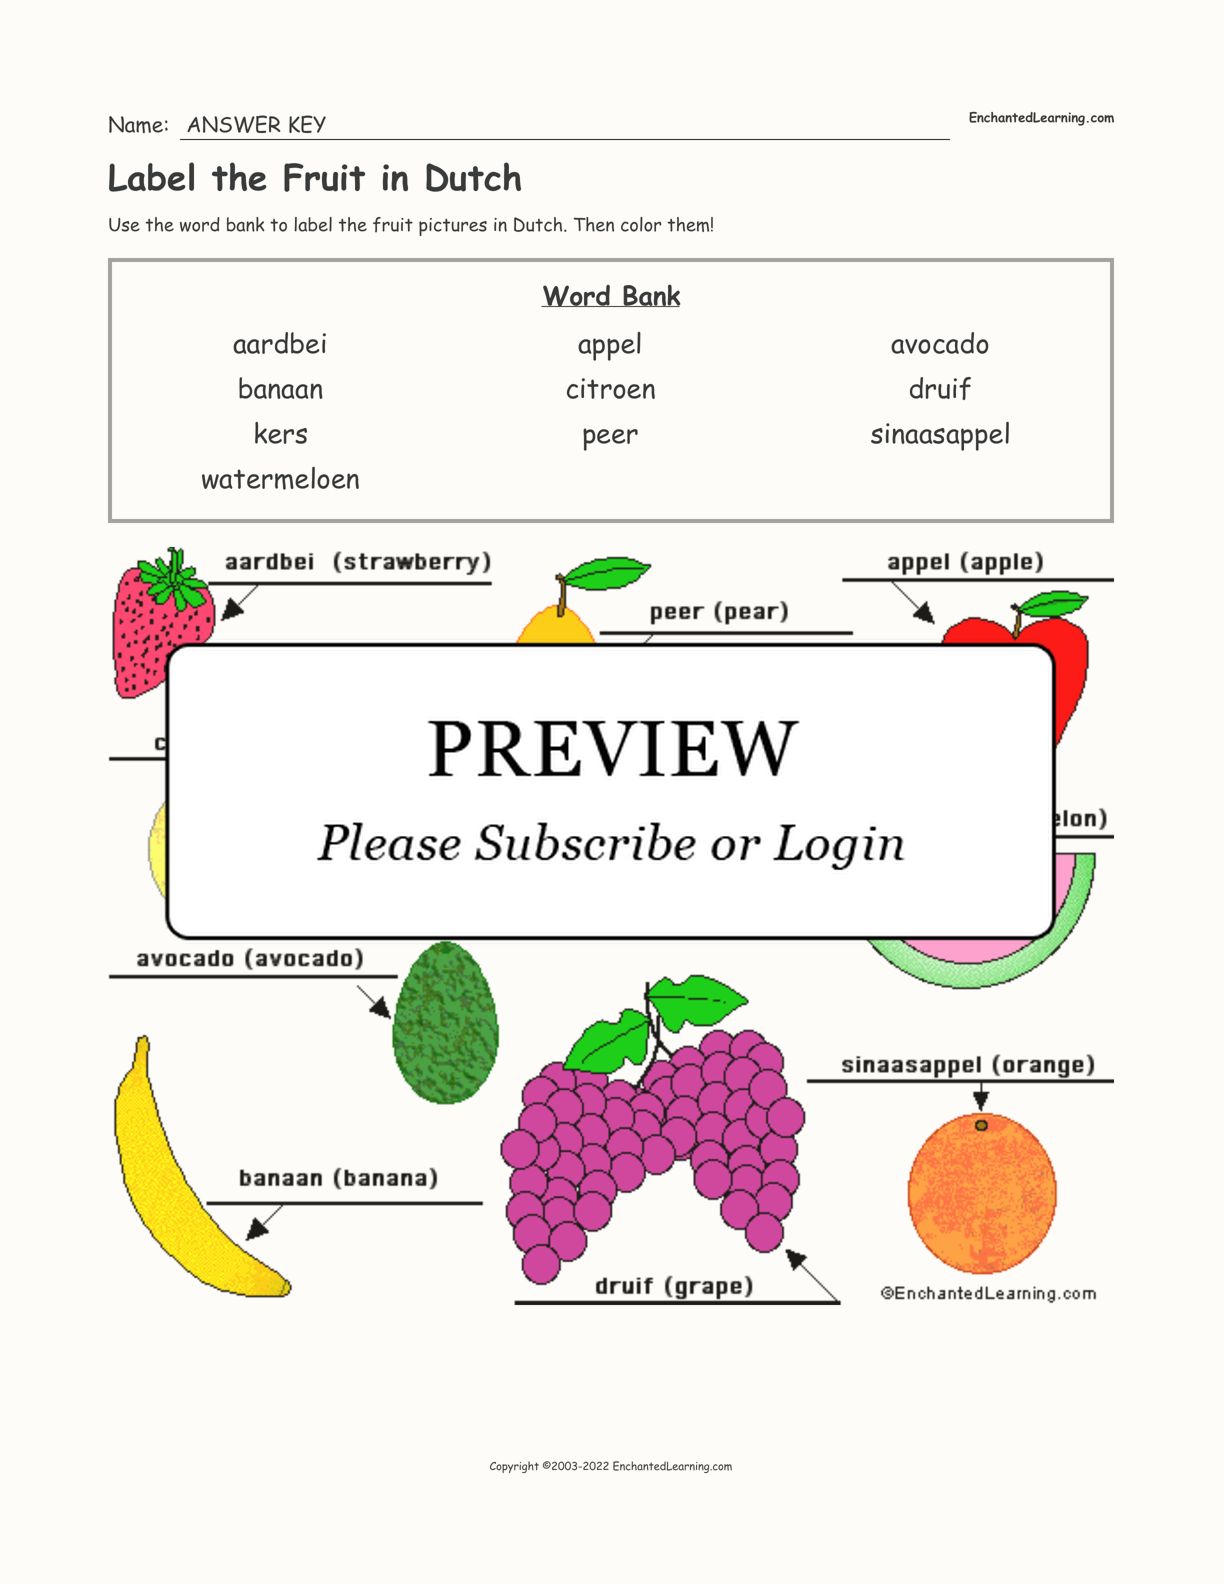 Label the Fruit in Dutch interactive worksheet page 2